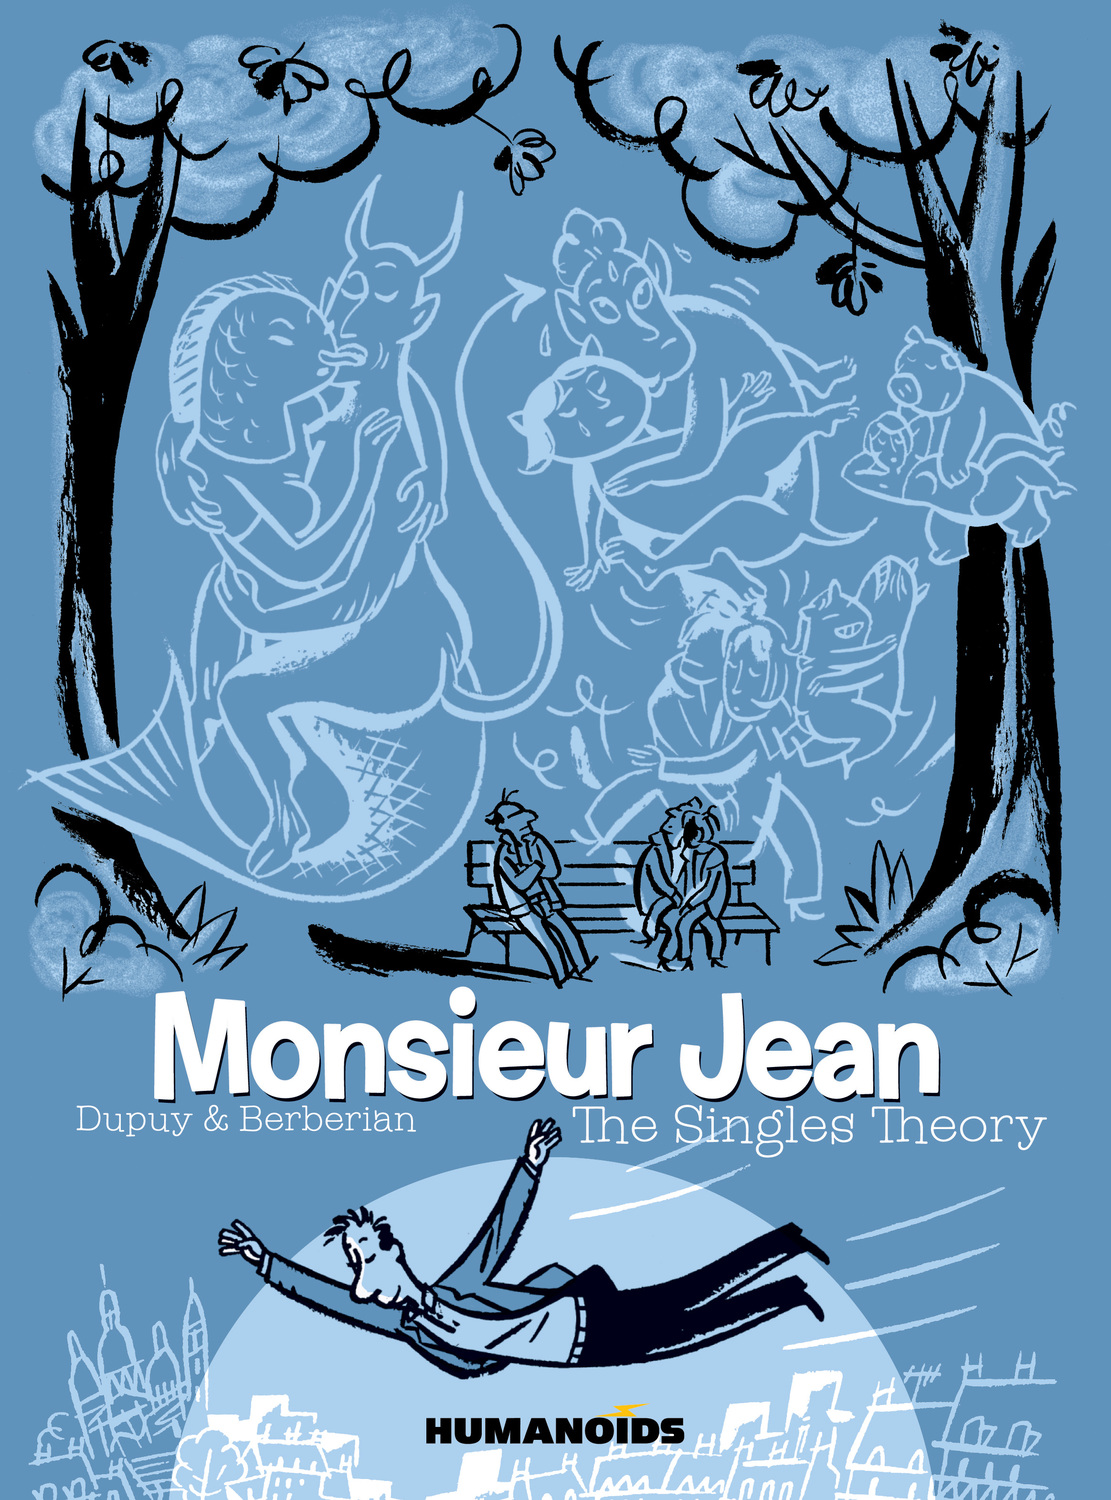 Monsieur Jean - Hardcover Trade : The Singles Theory